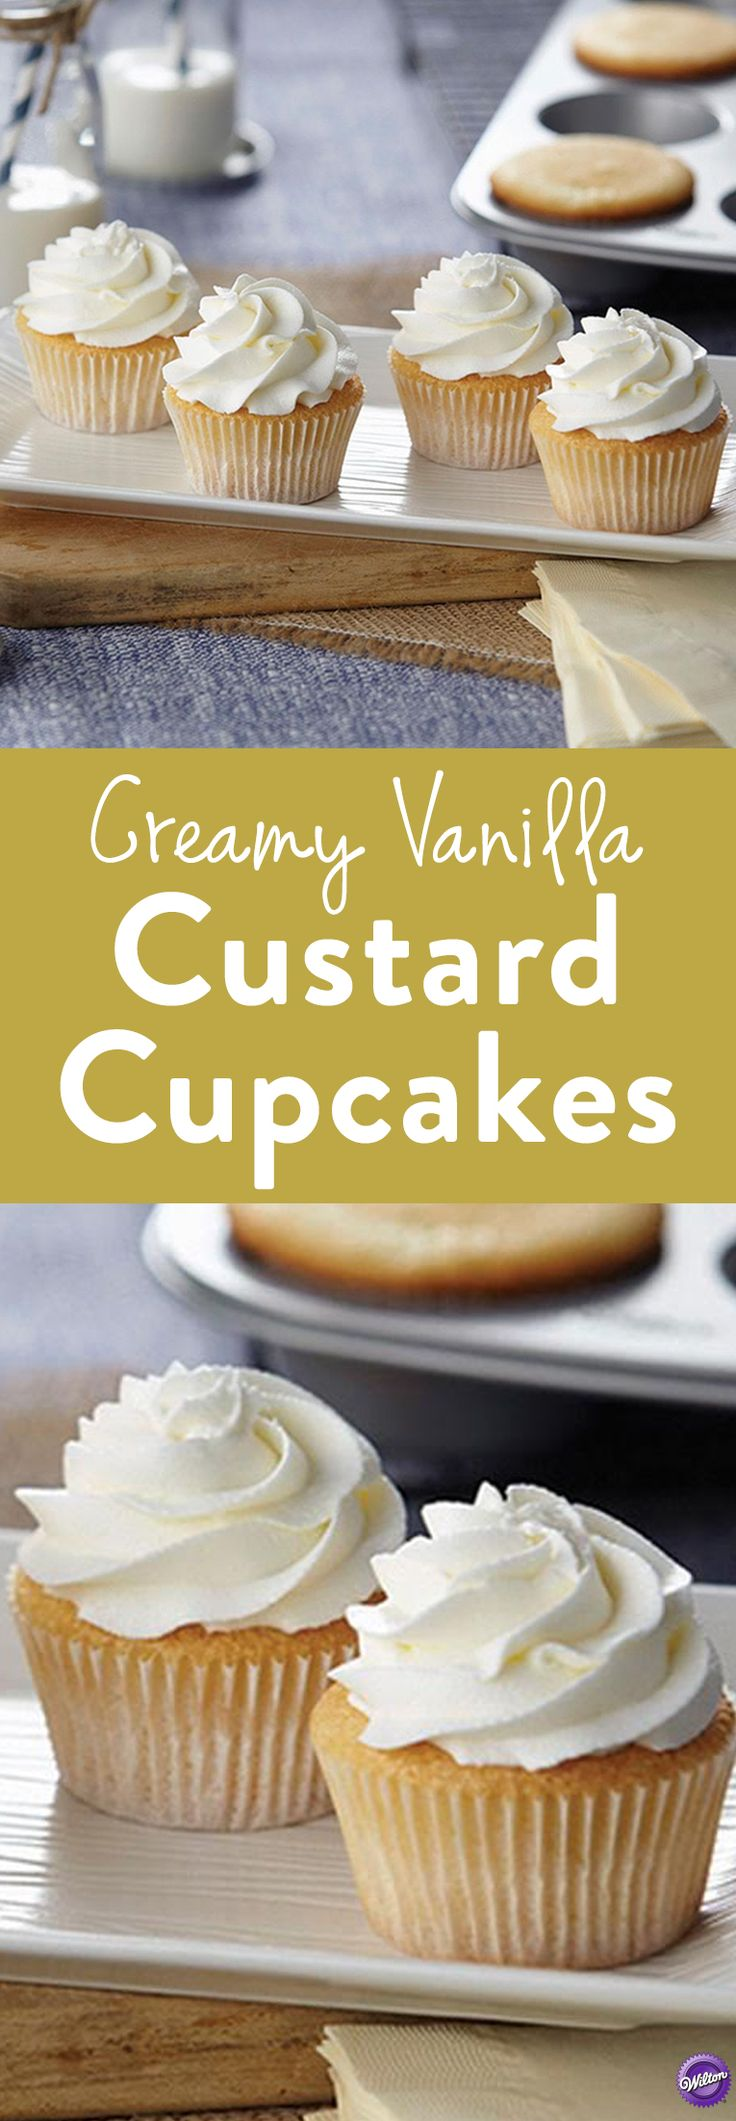 Creamy Vanilla Custard Recipe - These classic cupcakes highlight all of the glory of sweet, floral vanilla and have the added richness of velvety custard. You'll never look at vanilla the same again because it has the unique ability to enhance other flavors, including deliciously moist cake.